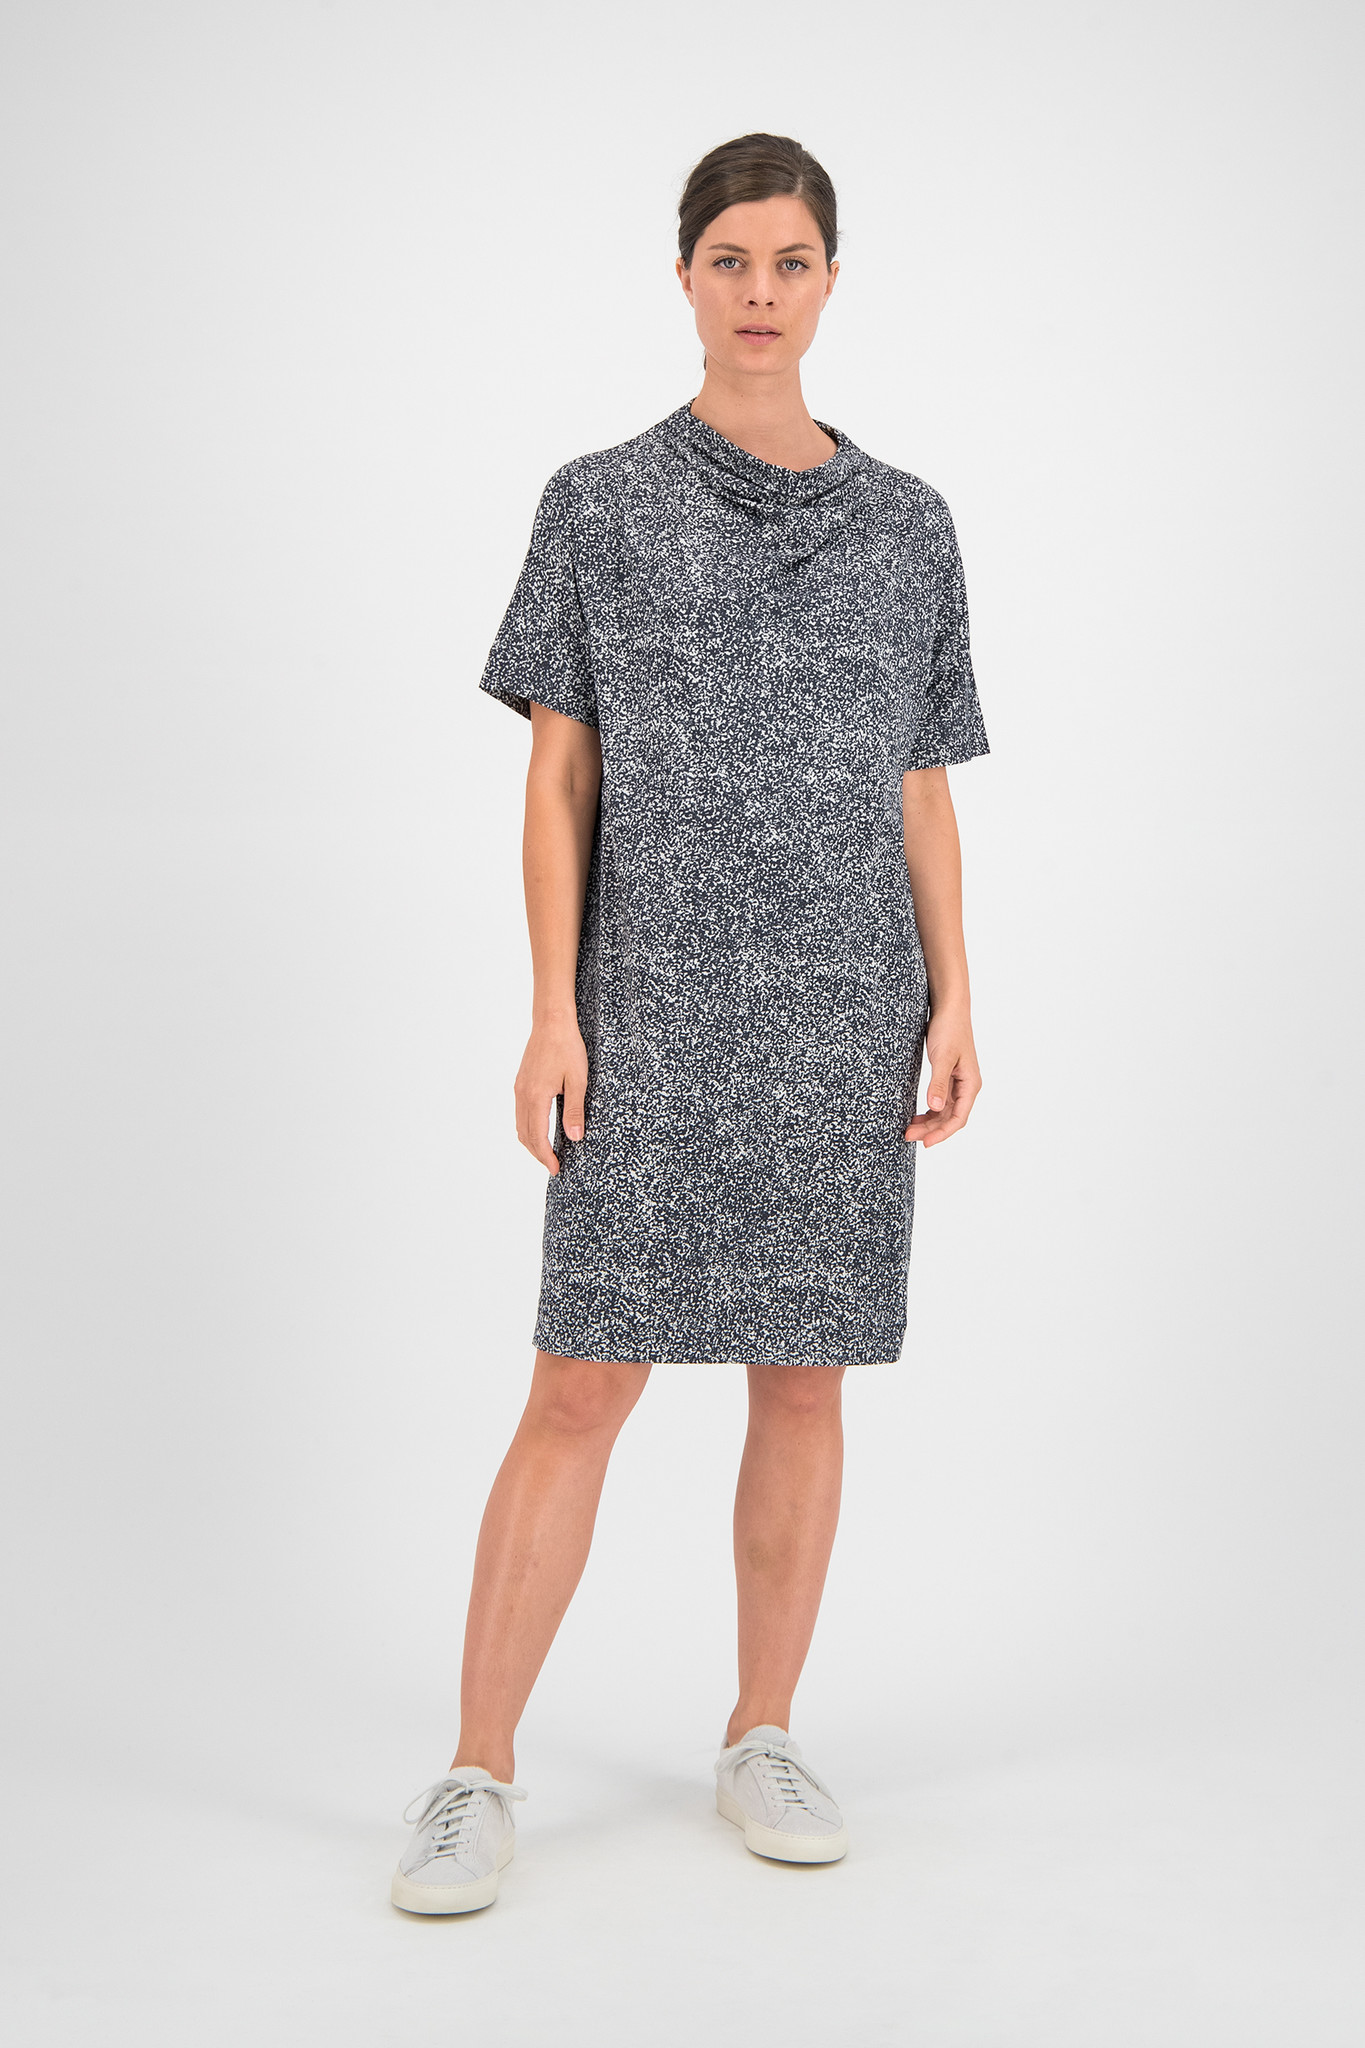 SYLVER Gravel Silky Jersey Dress Turtle-nec - Grey